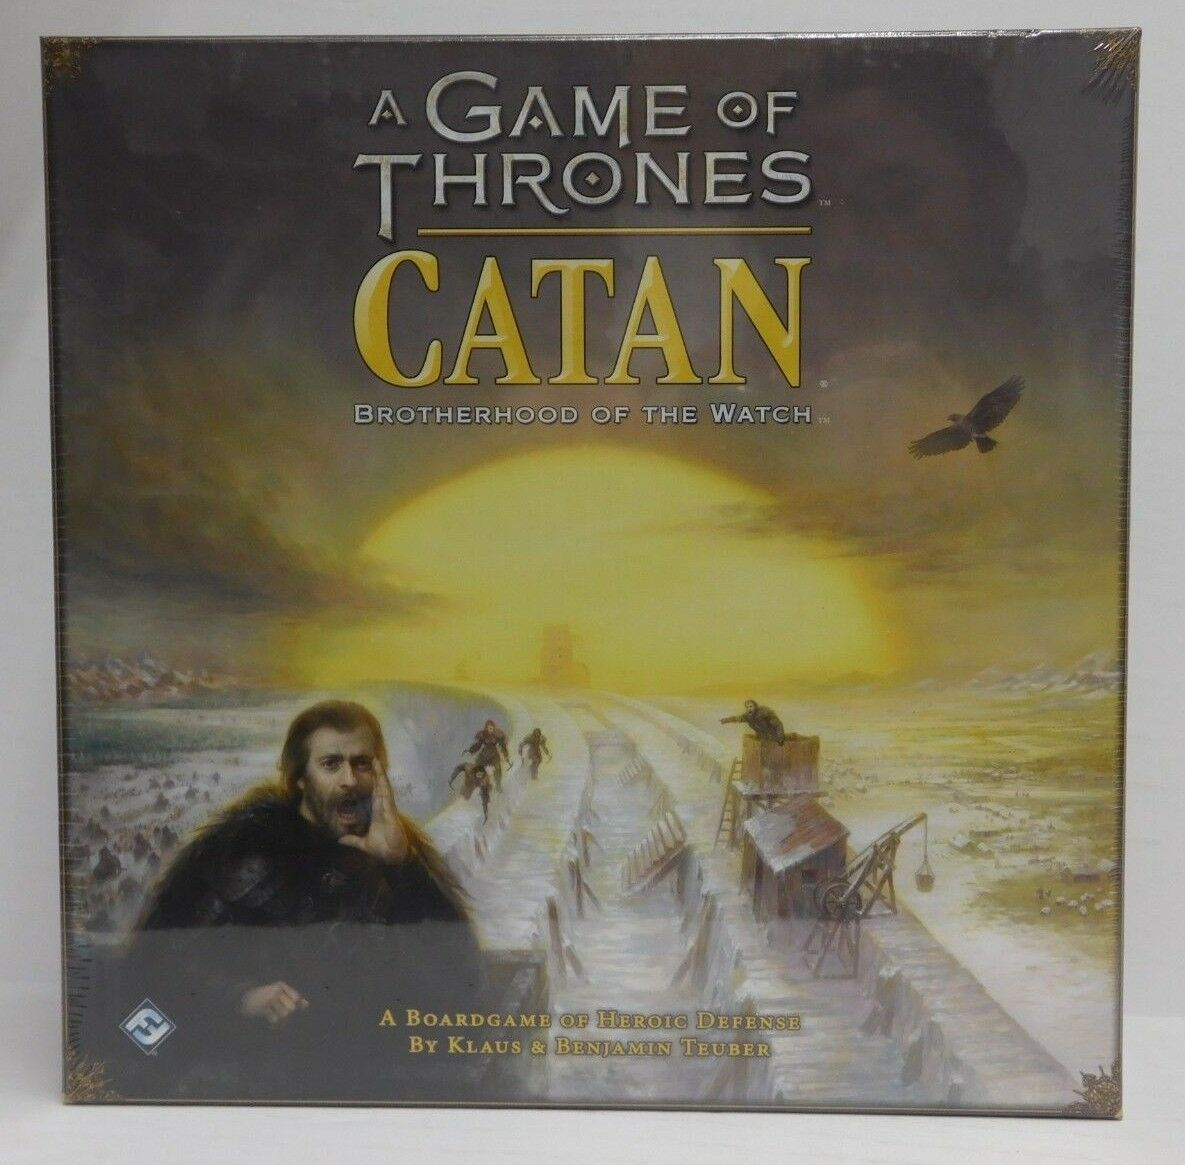 A Game of Thrones Catan Brougeherhood of the Watch-Fantasy Figure Gallery Board Game-Neuf